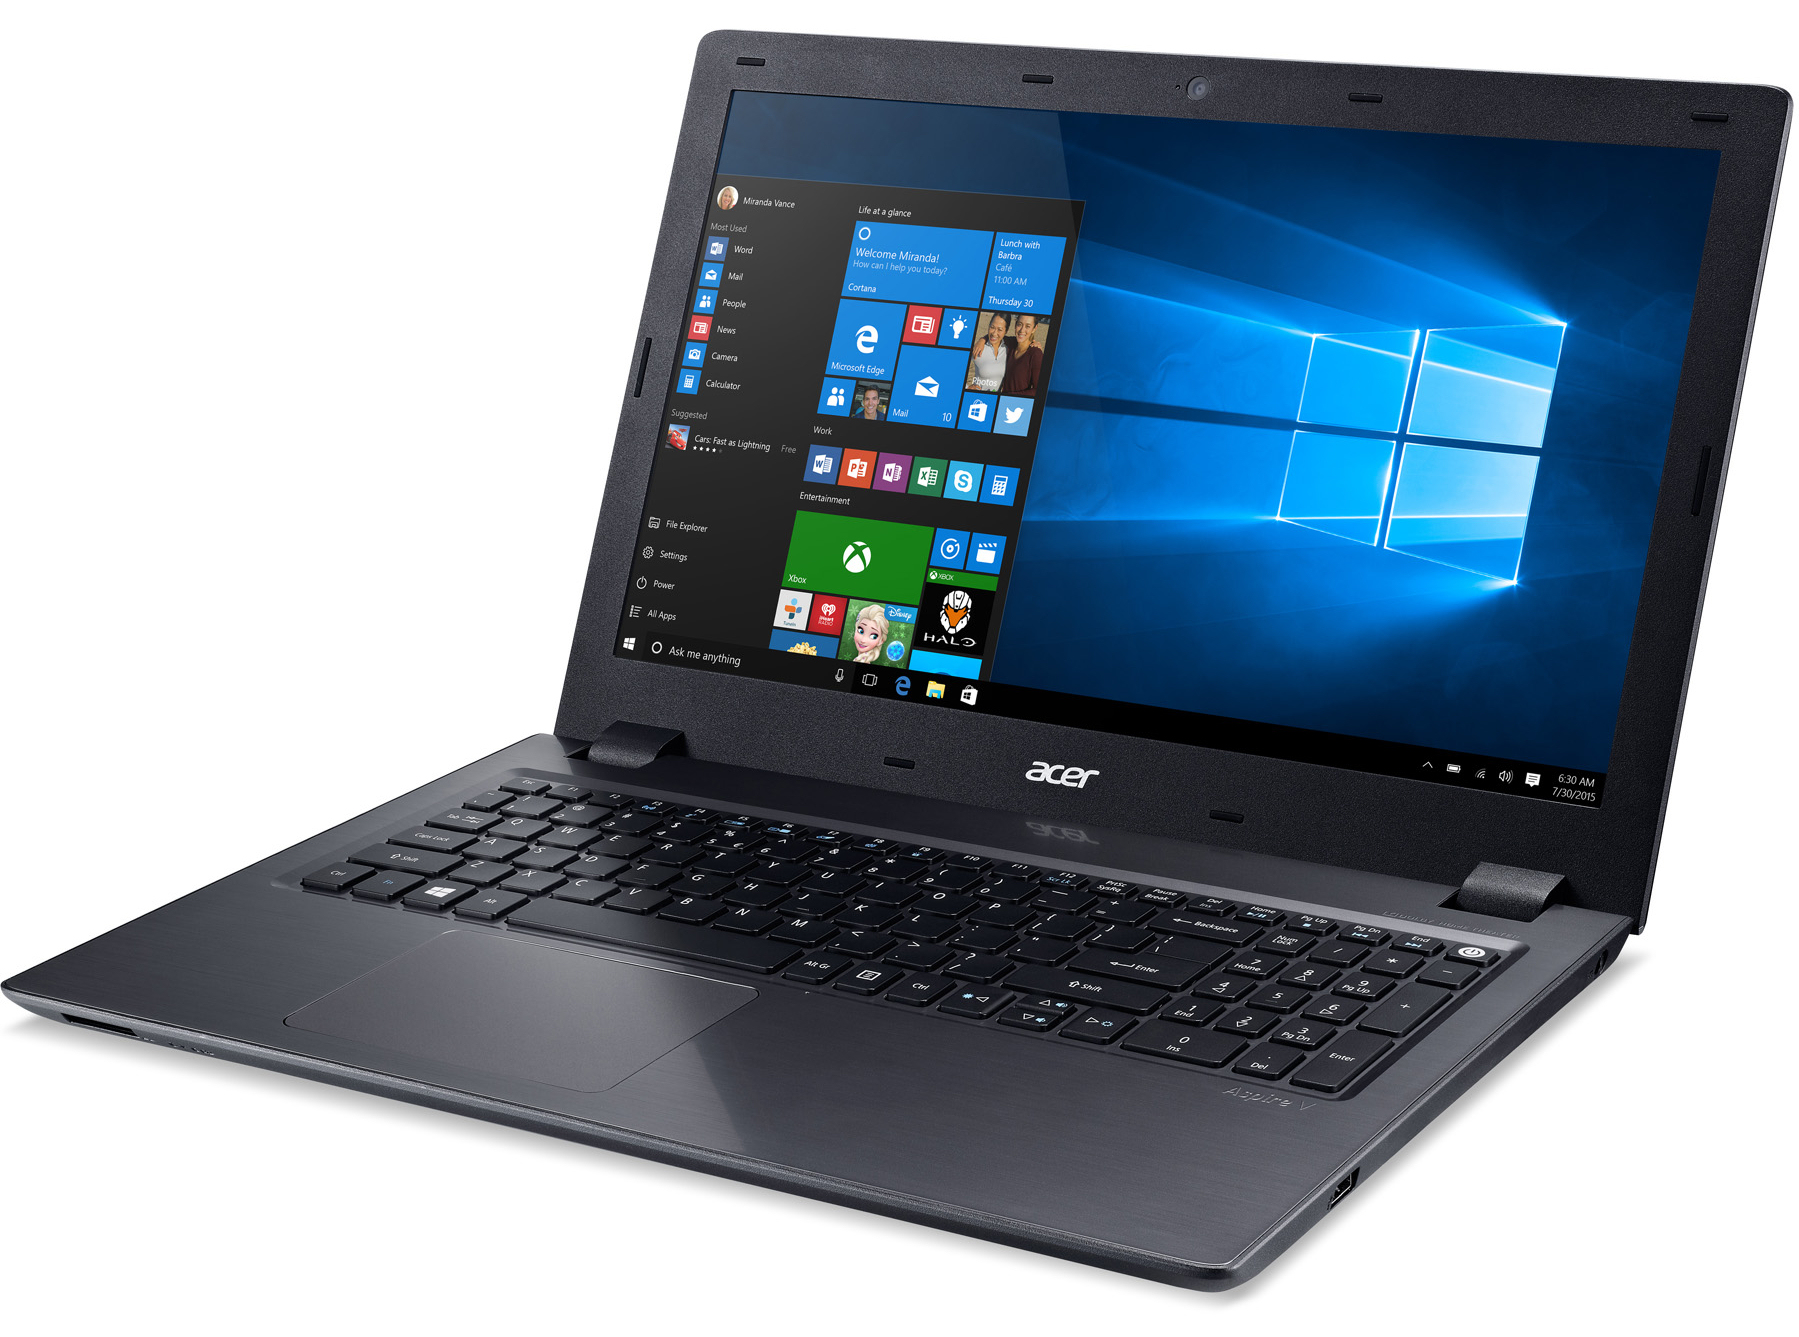 Acer Aspire 5516 Realtek HDMI Audio Driver for Windows 7